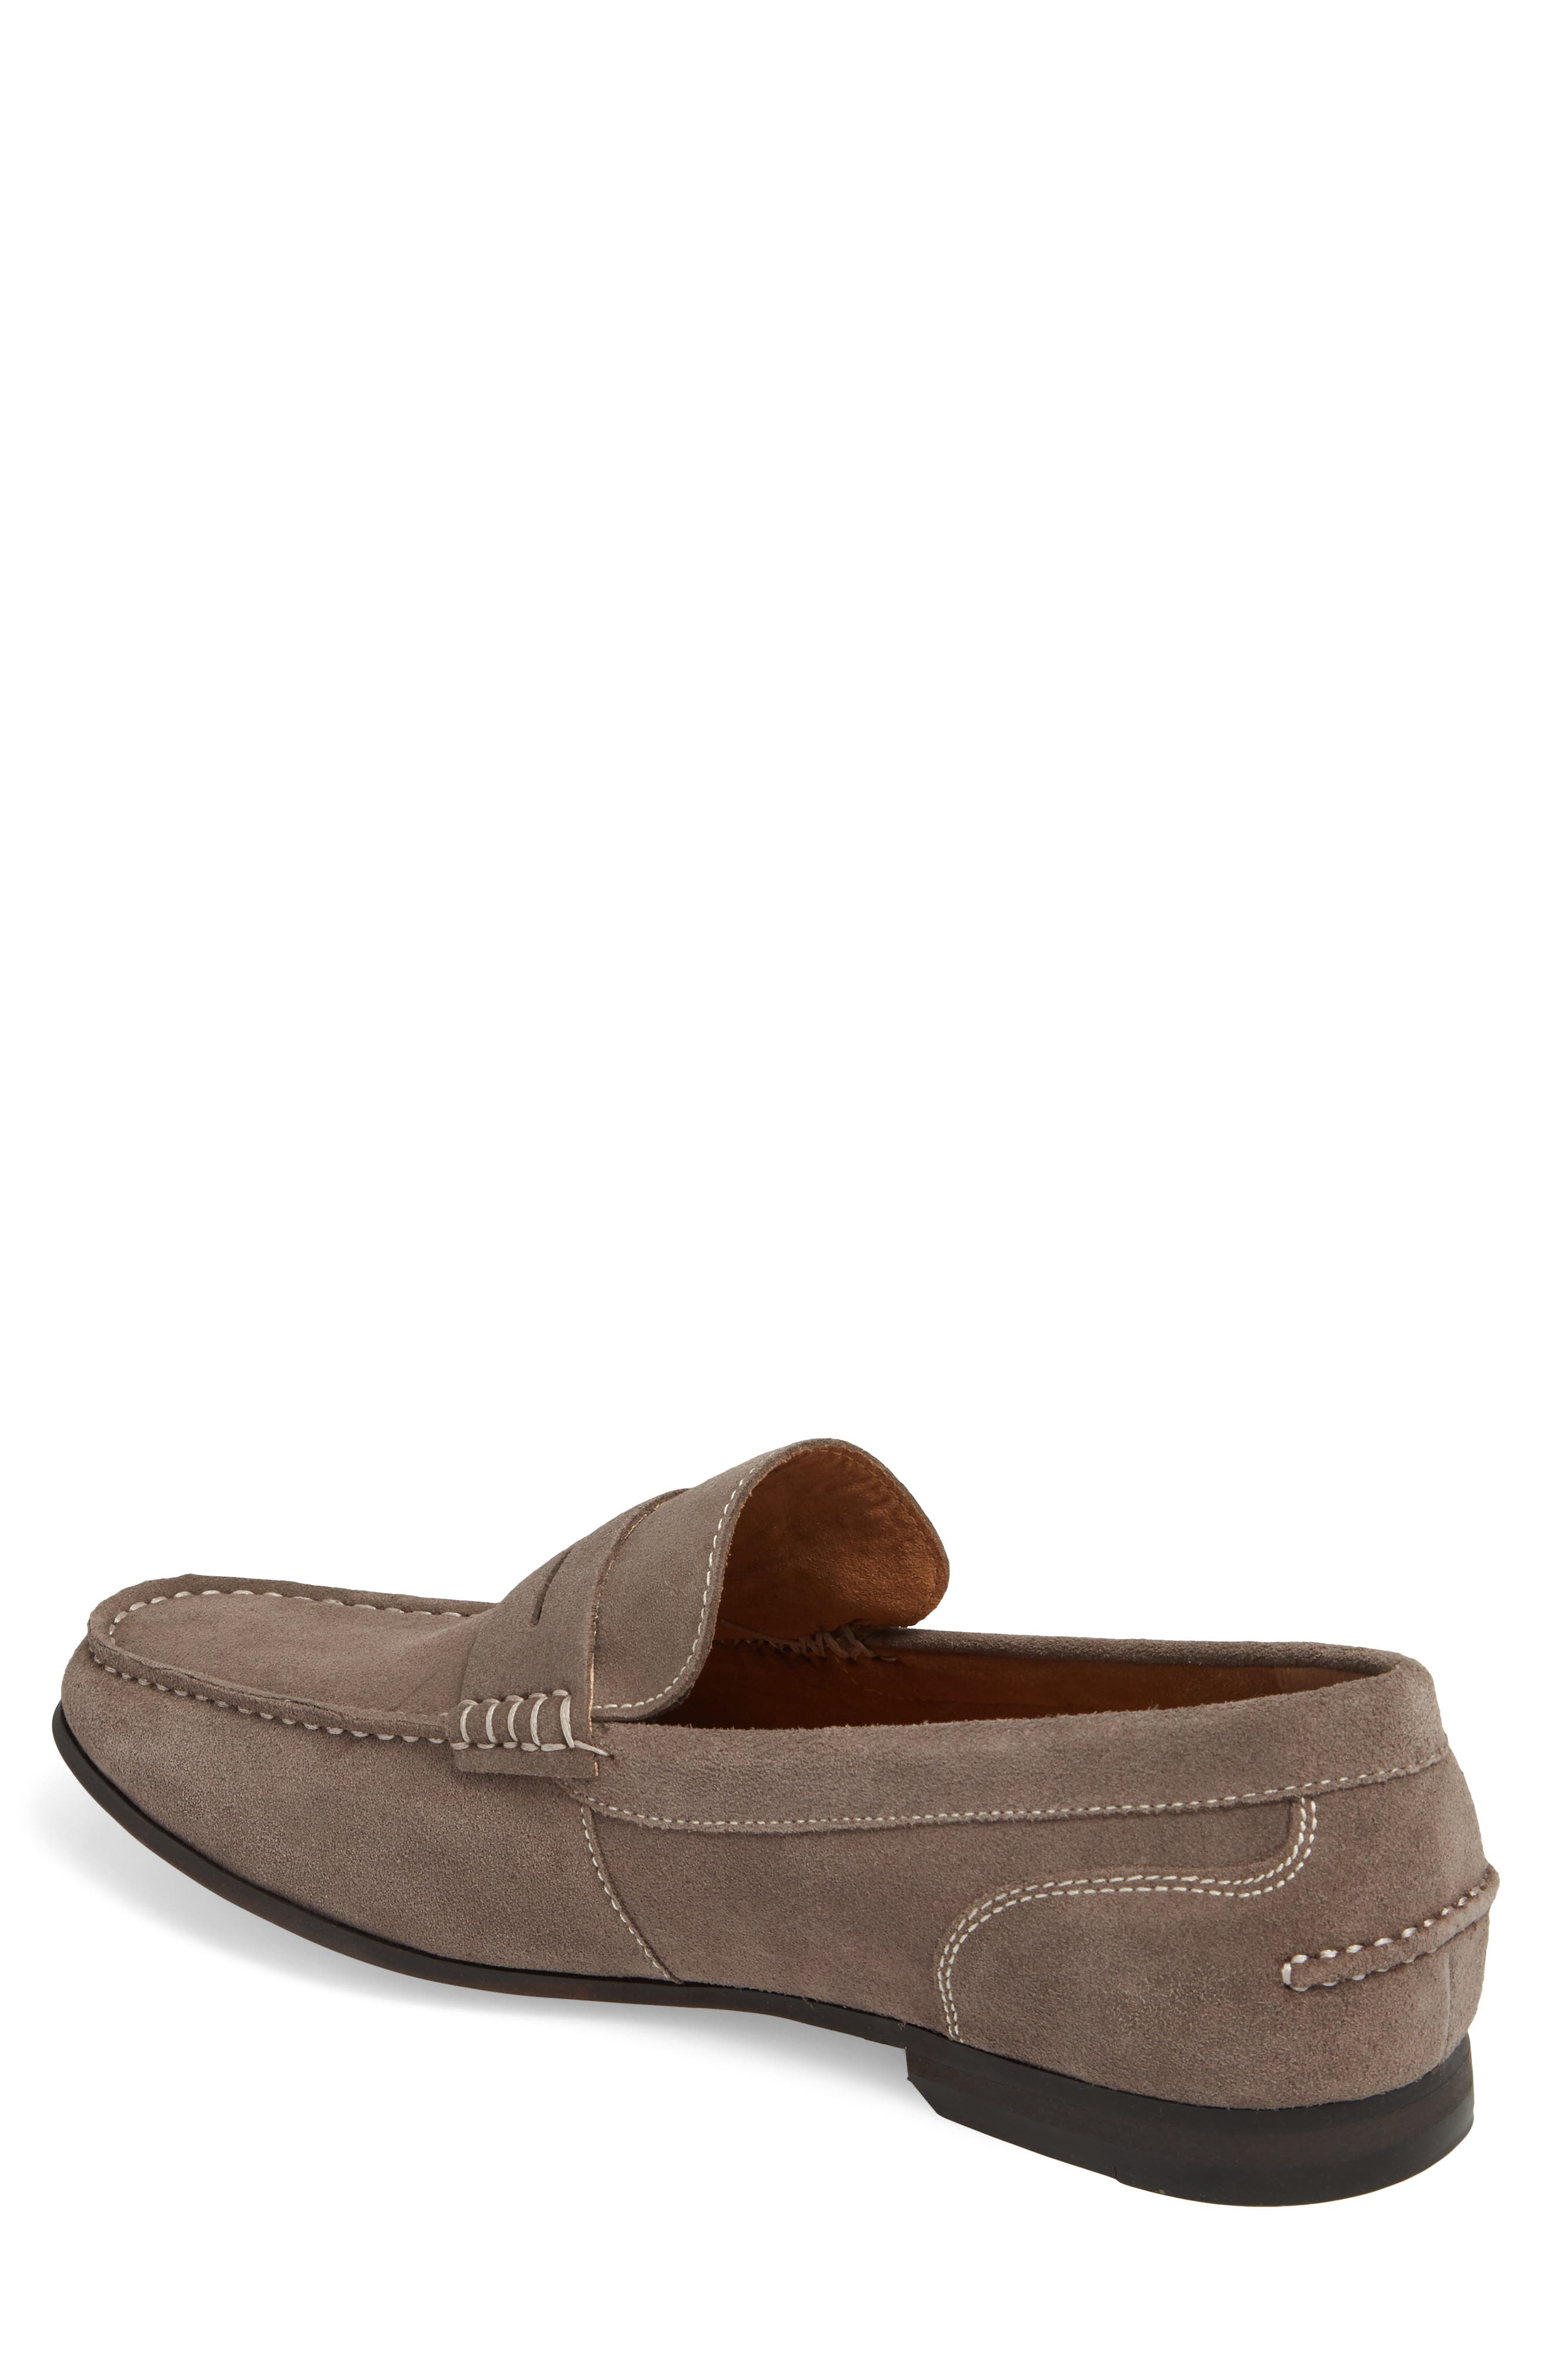 Crespo Penny Loafer,                             Alternate thumbnail 2, color,                             Grey